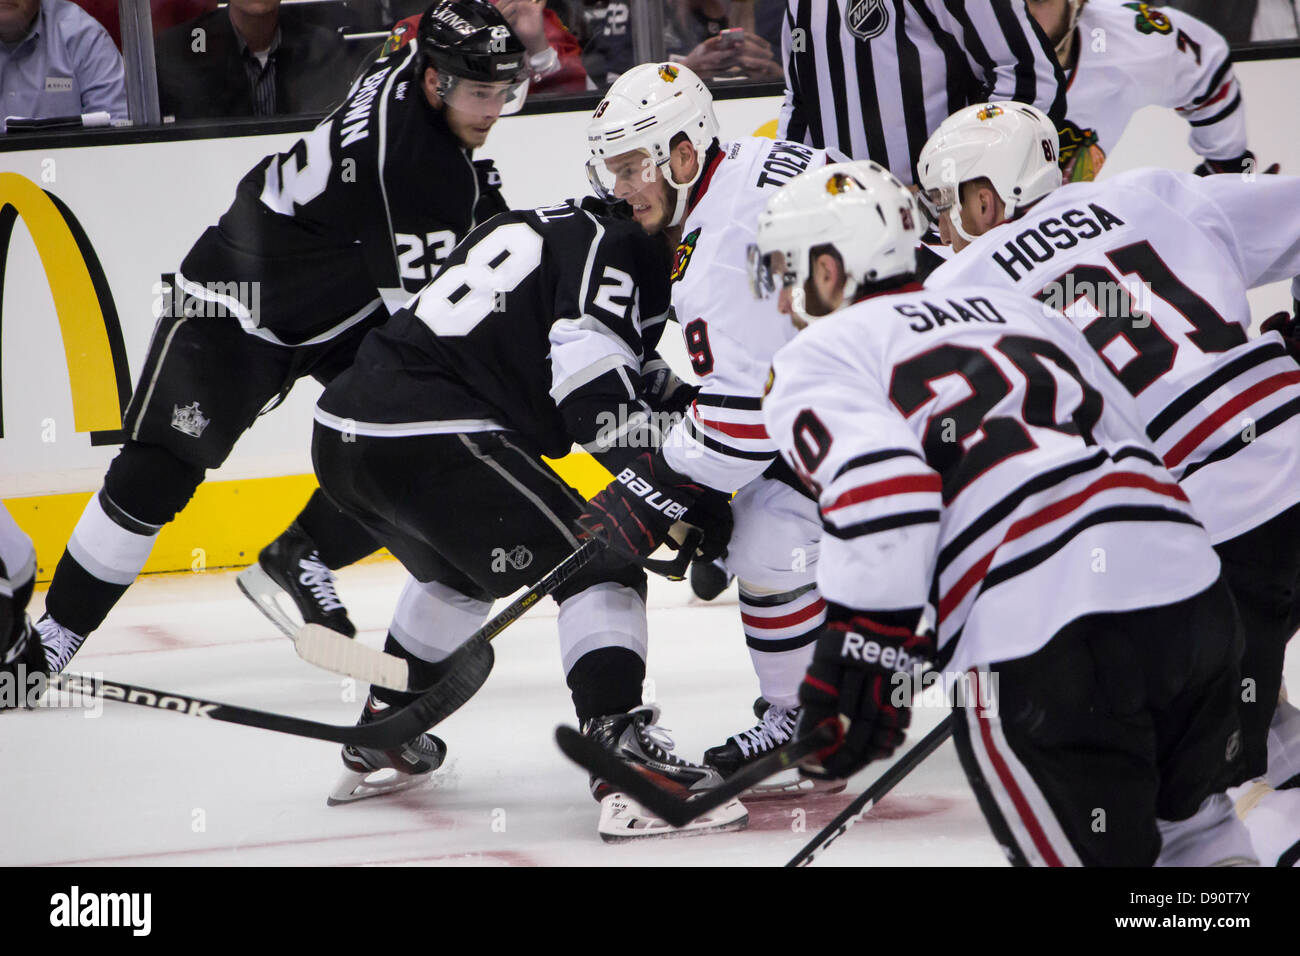 A Jonathan Toews face-off and scrimmage during Game 3 of the 2012-13 NHL Western Conference Finals versus the LA - Stock Image